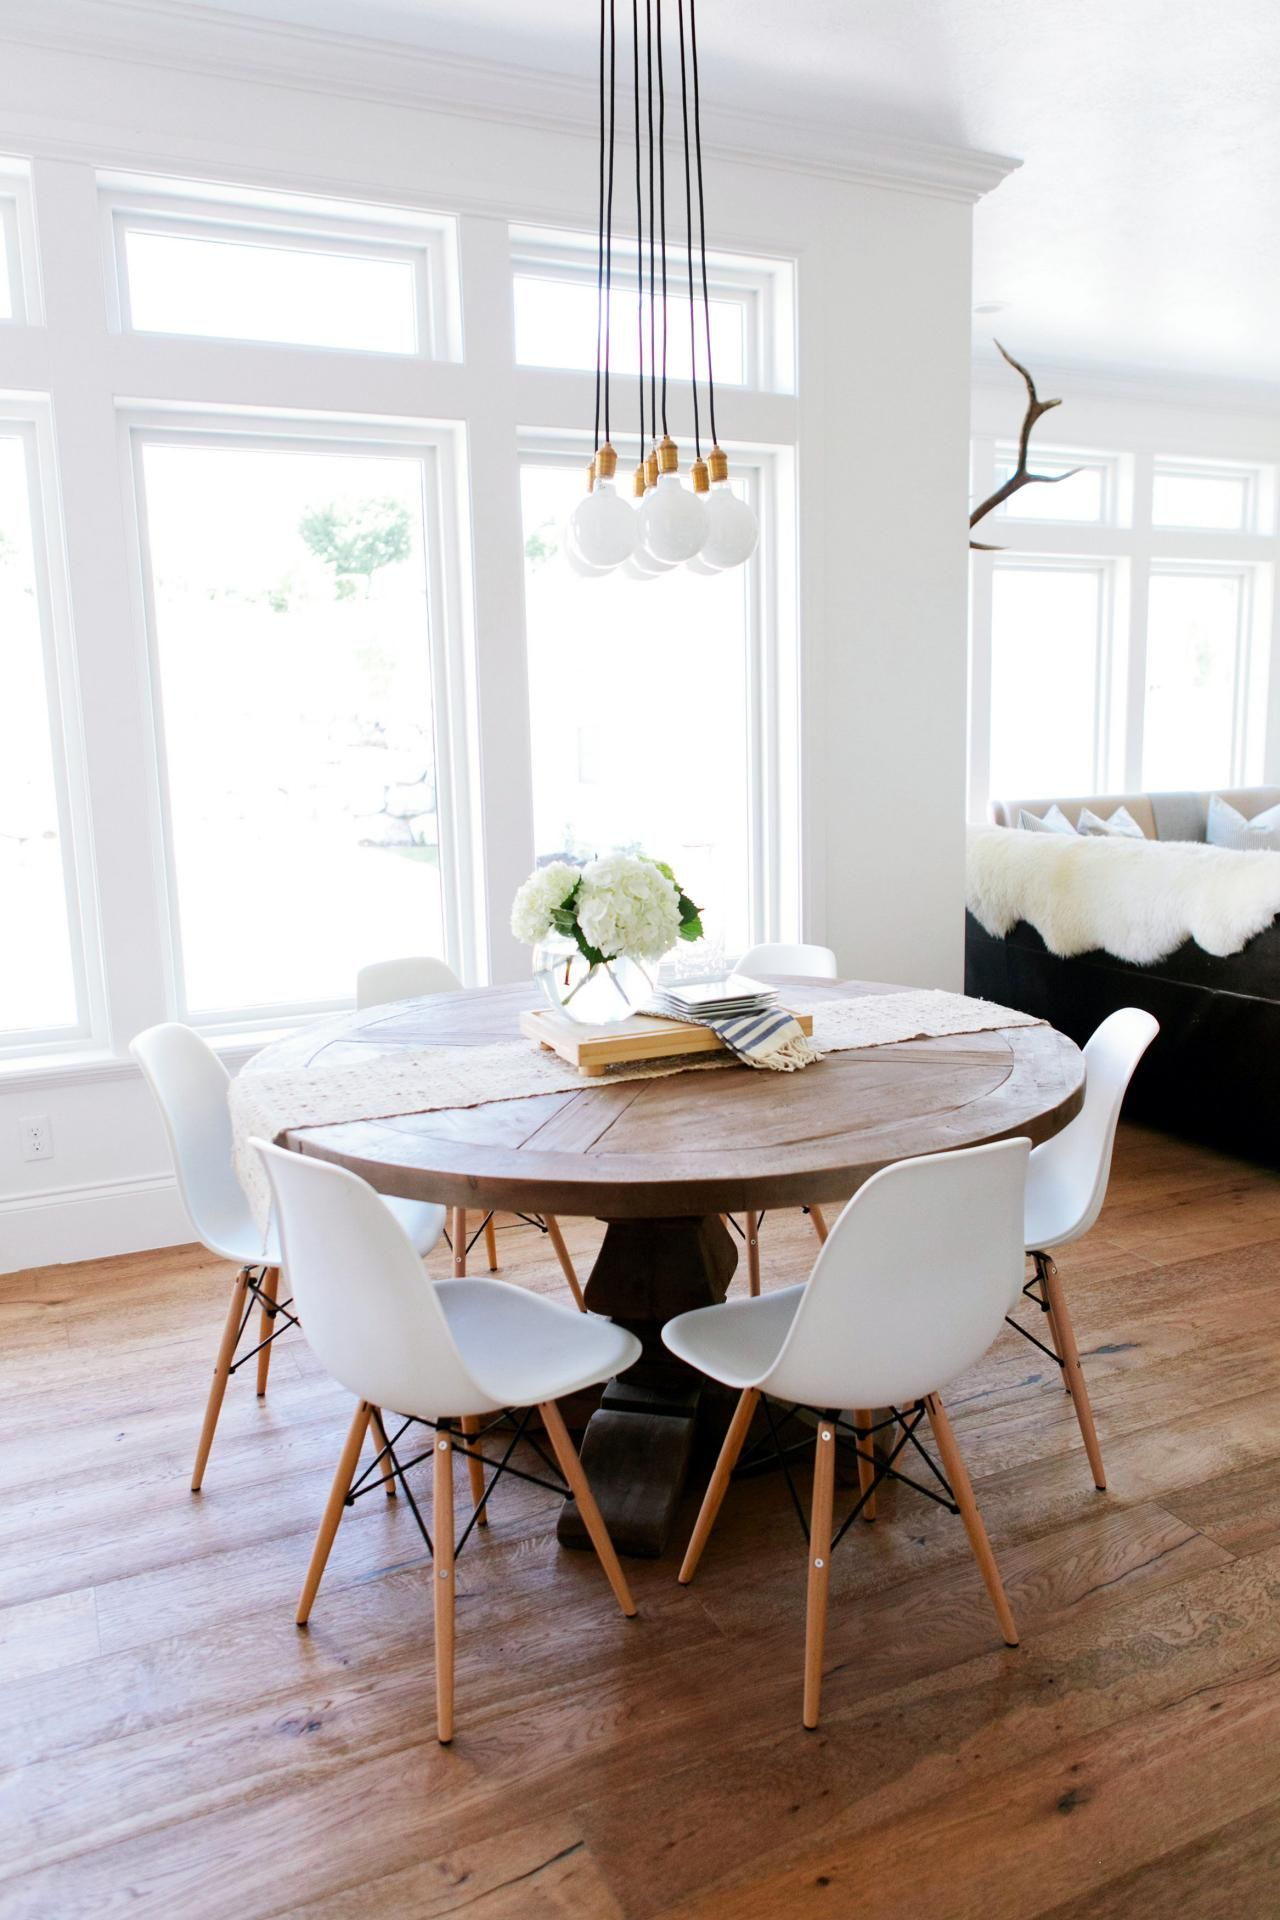 A rustic round wood table surrounded by white Eames dining chairs creates an interesting mix in this transitional eat-in kitchen. & A rustic round wood table surrounded by white Eames dining chairs ...